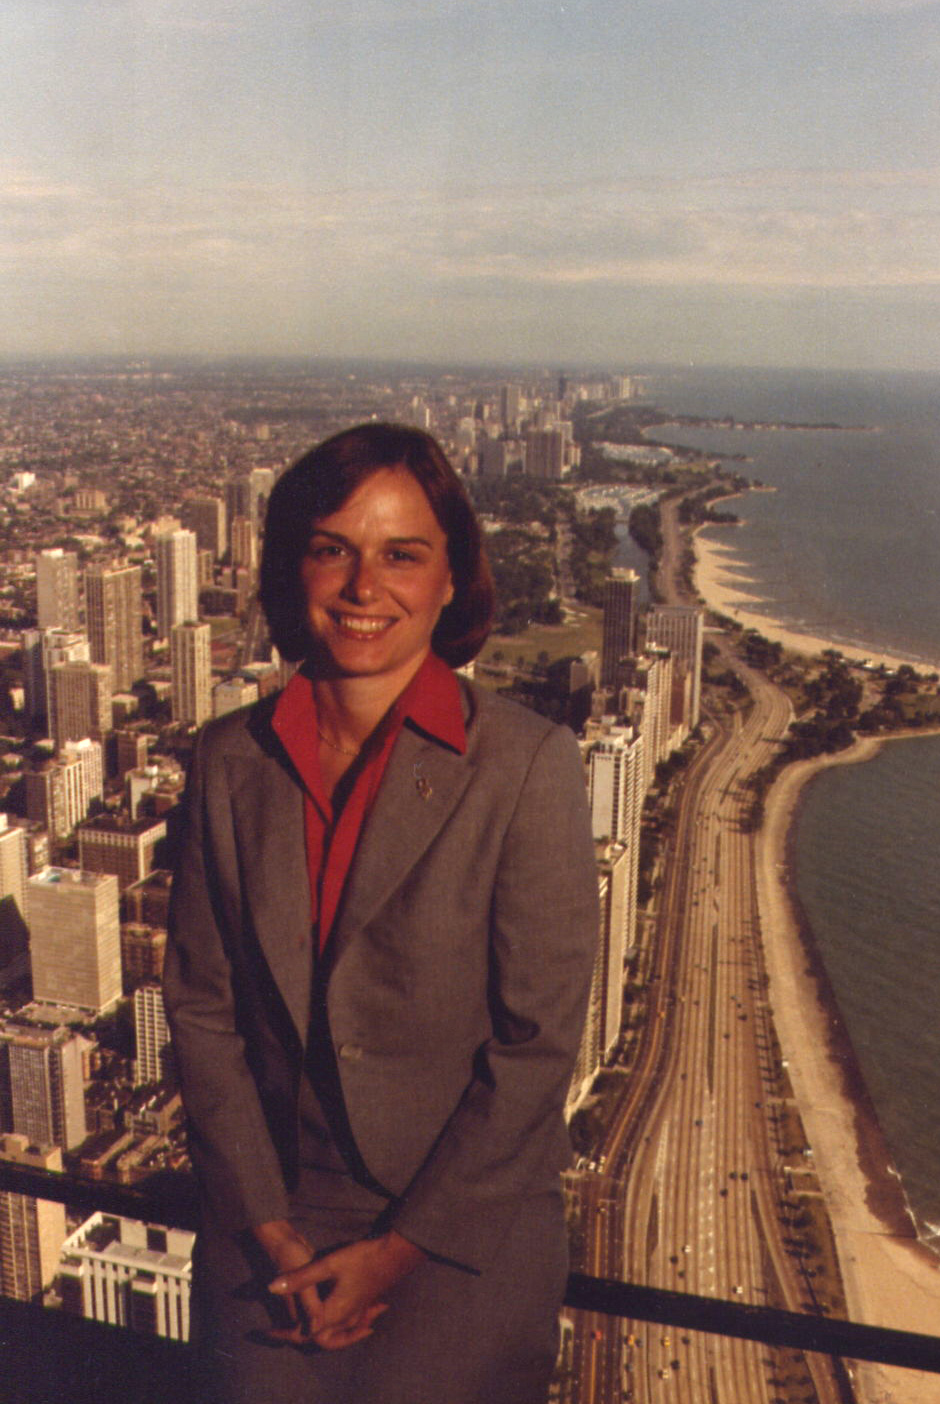 Candidate for U.S. House of Representatives IL-9 in Chicago (1982)